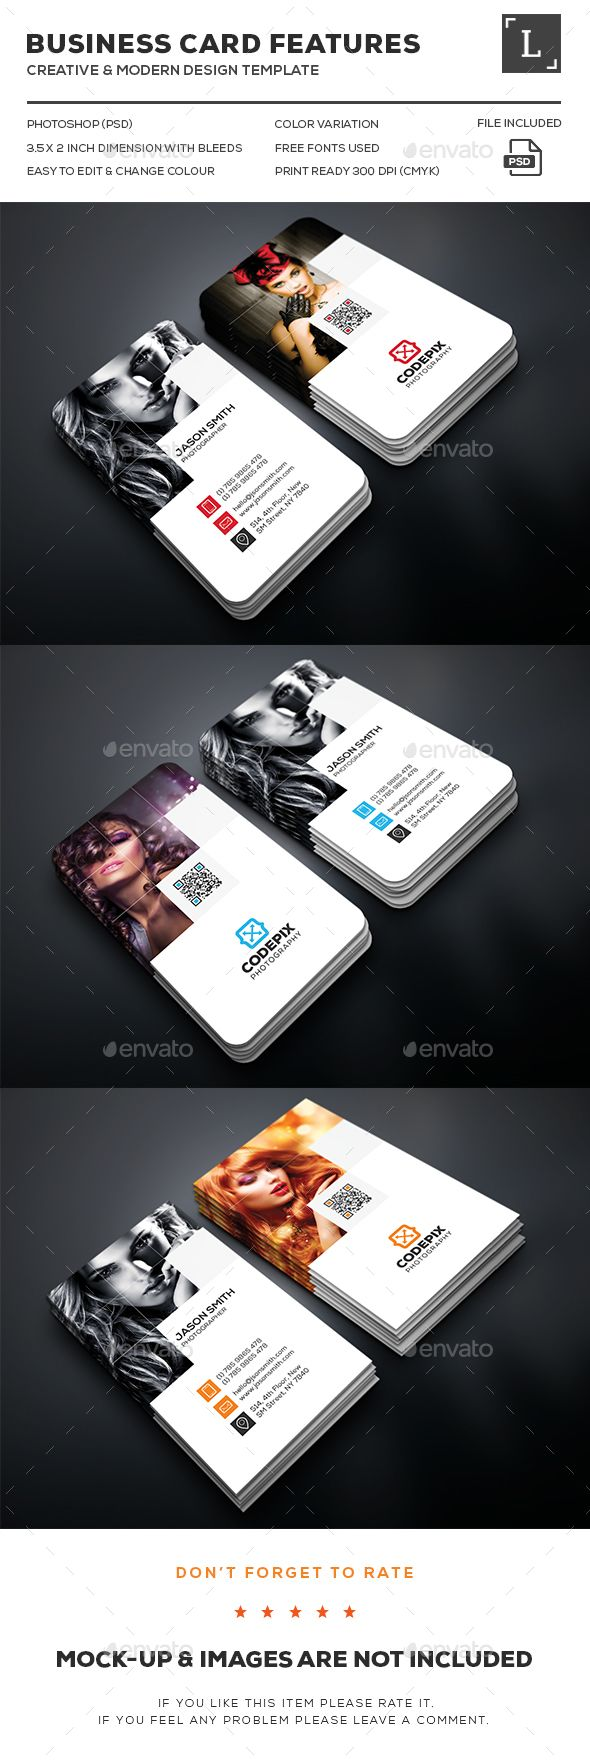 25 best bussiness card haircut images on pinterest cards black photography business cards magicingreecefo Choice Image